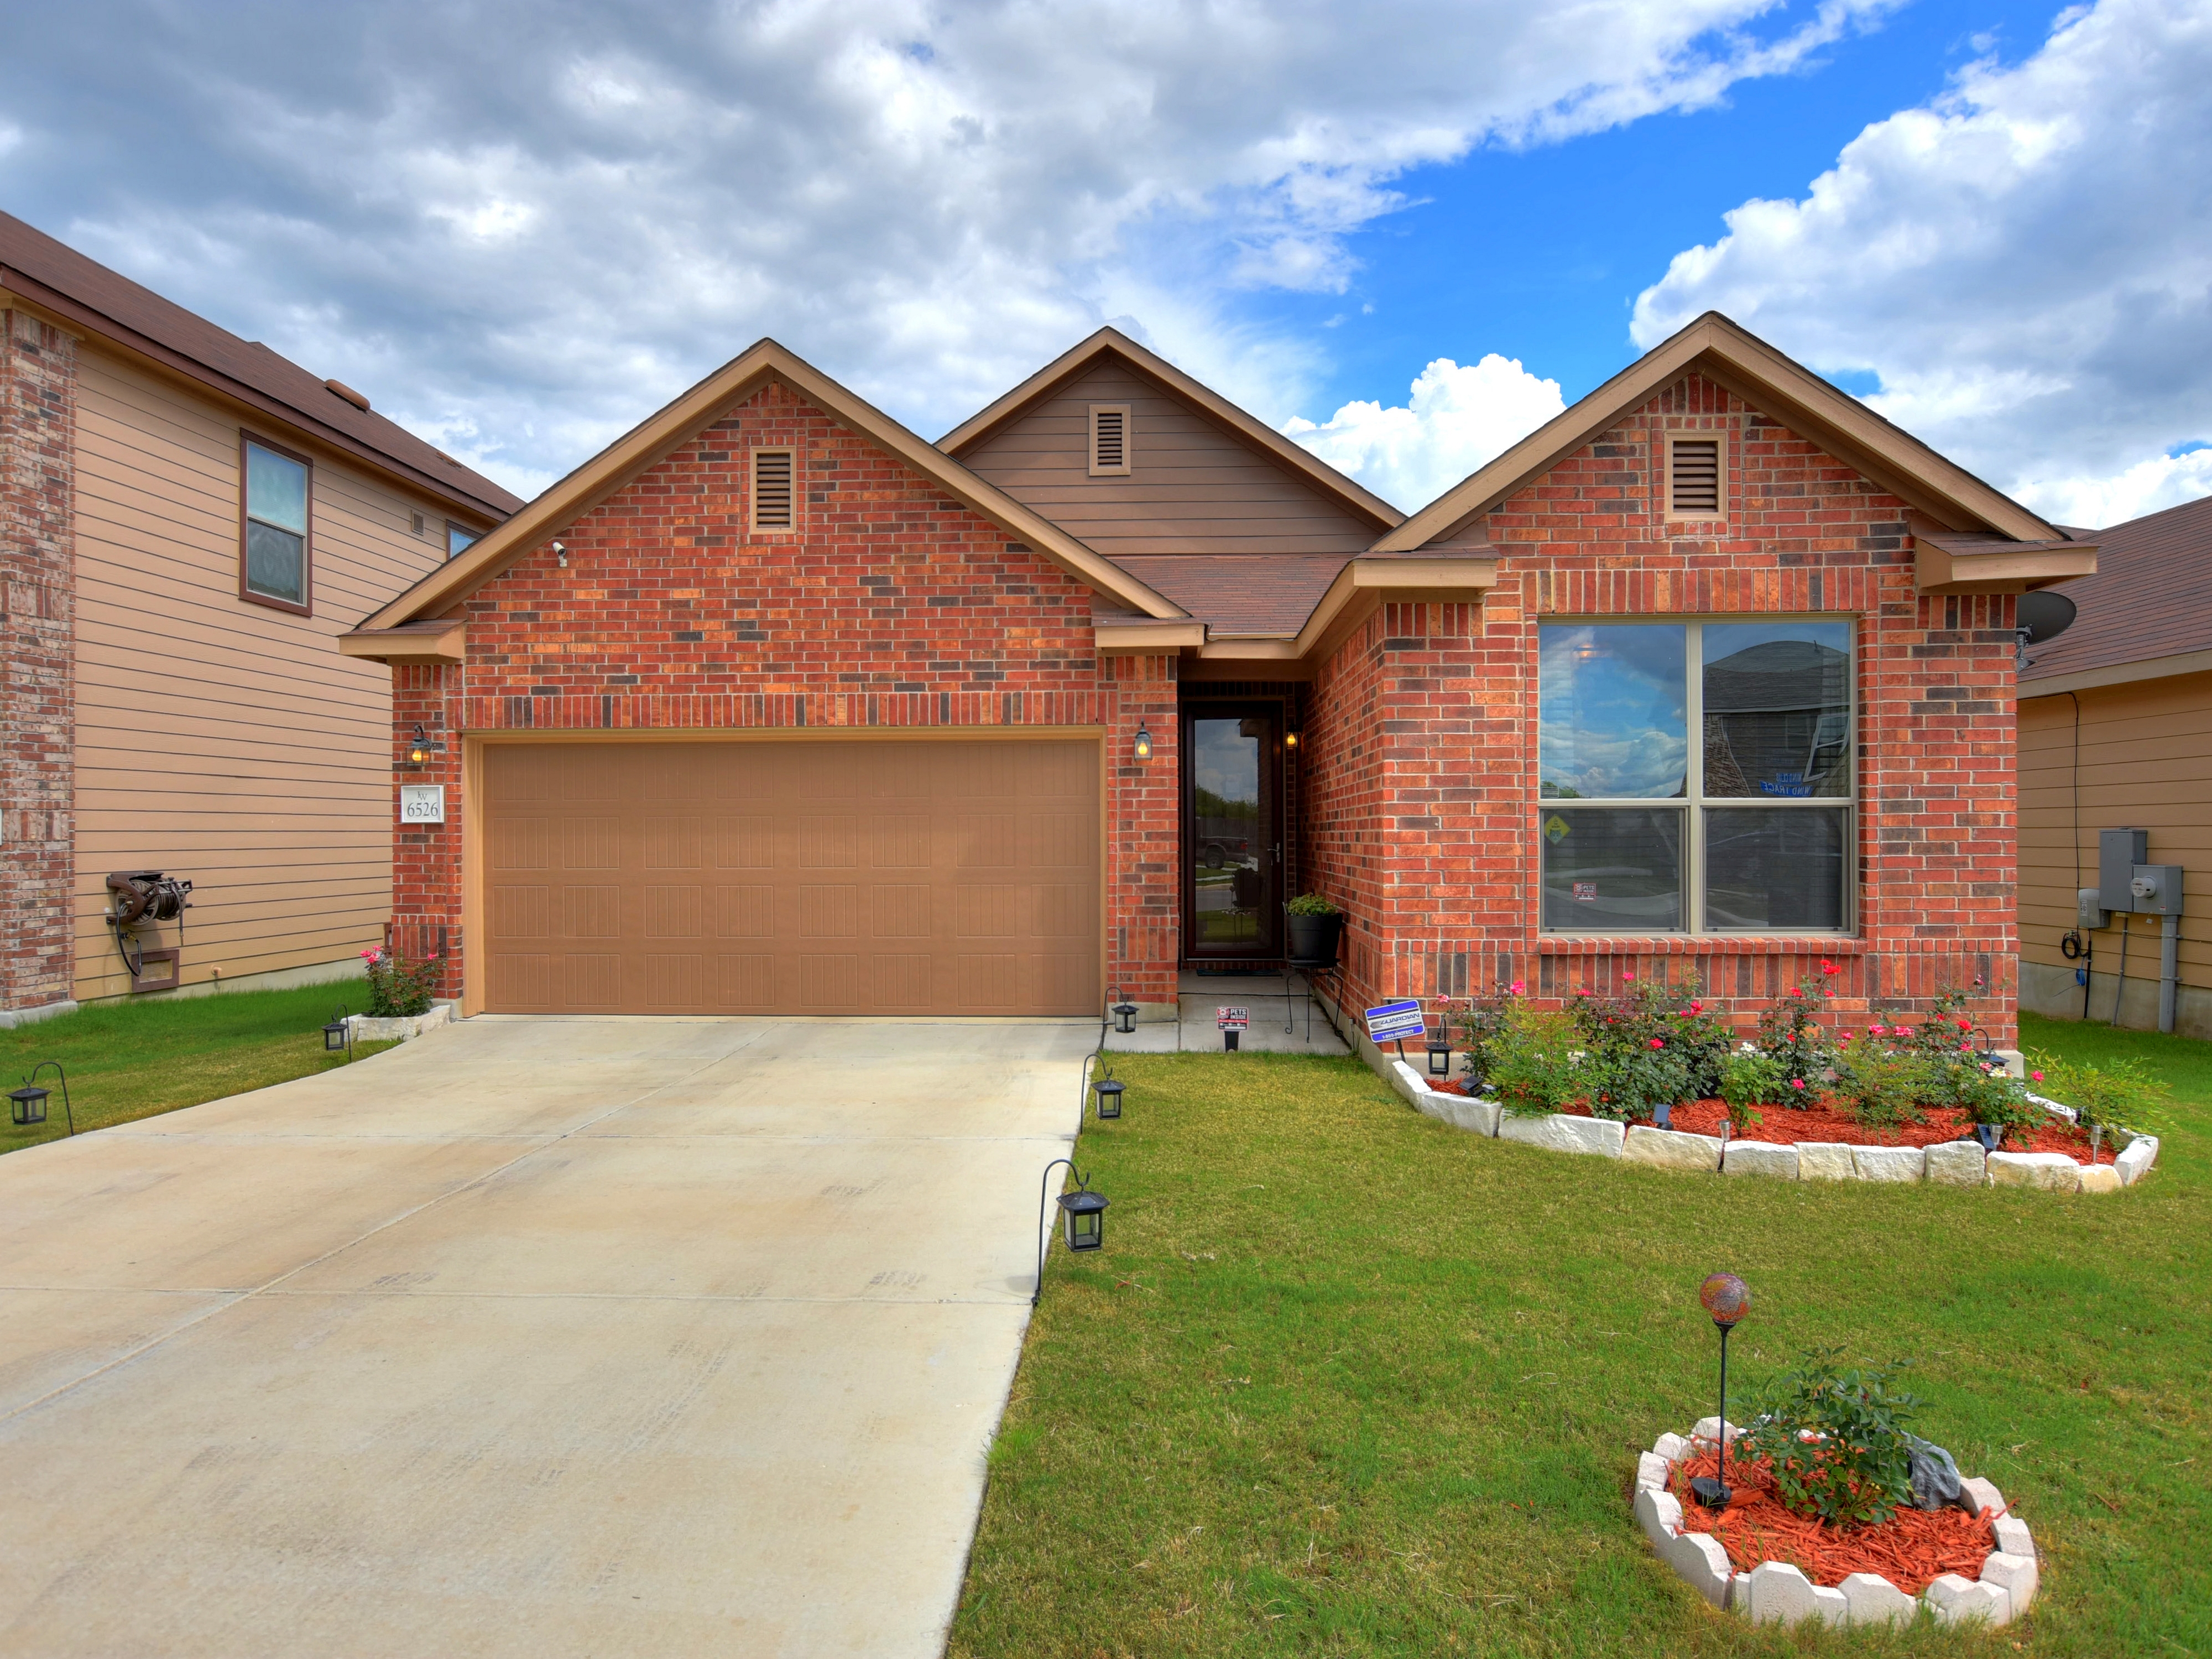 6526 Wind Trace, San Antonio. Click for more photos and pricing